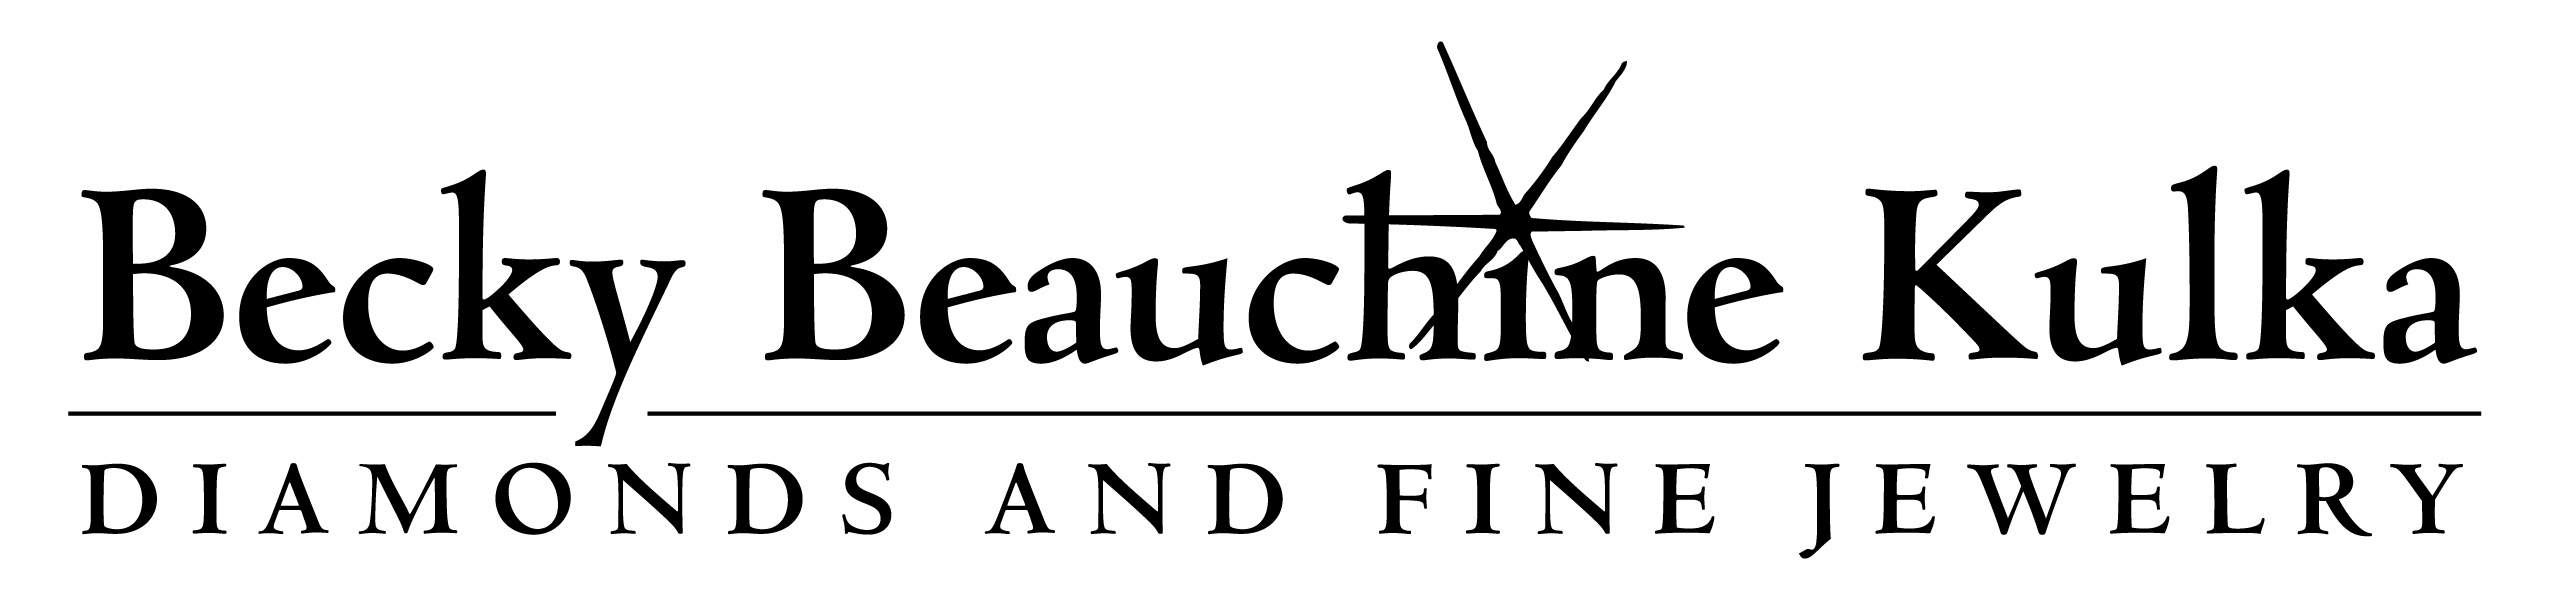 Becky Beauchine Kulka Diamonds and Fine Jewelry logo